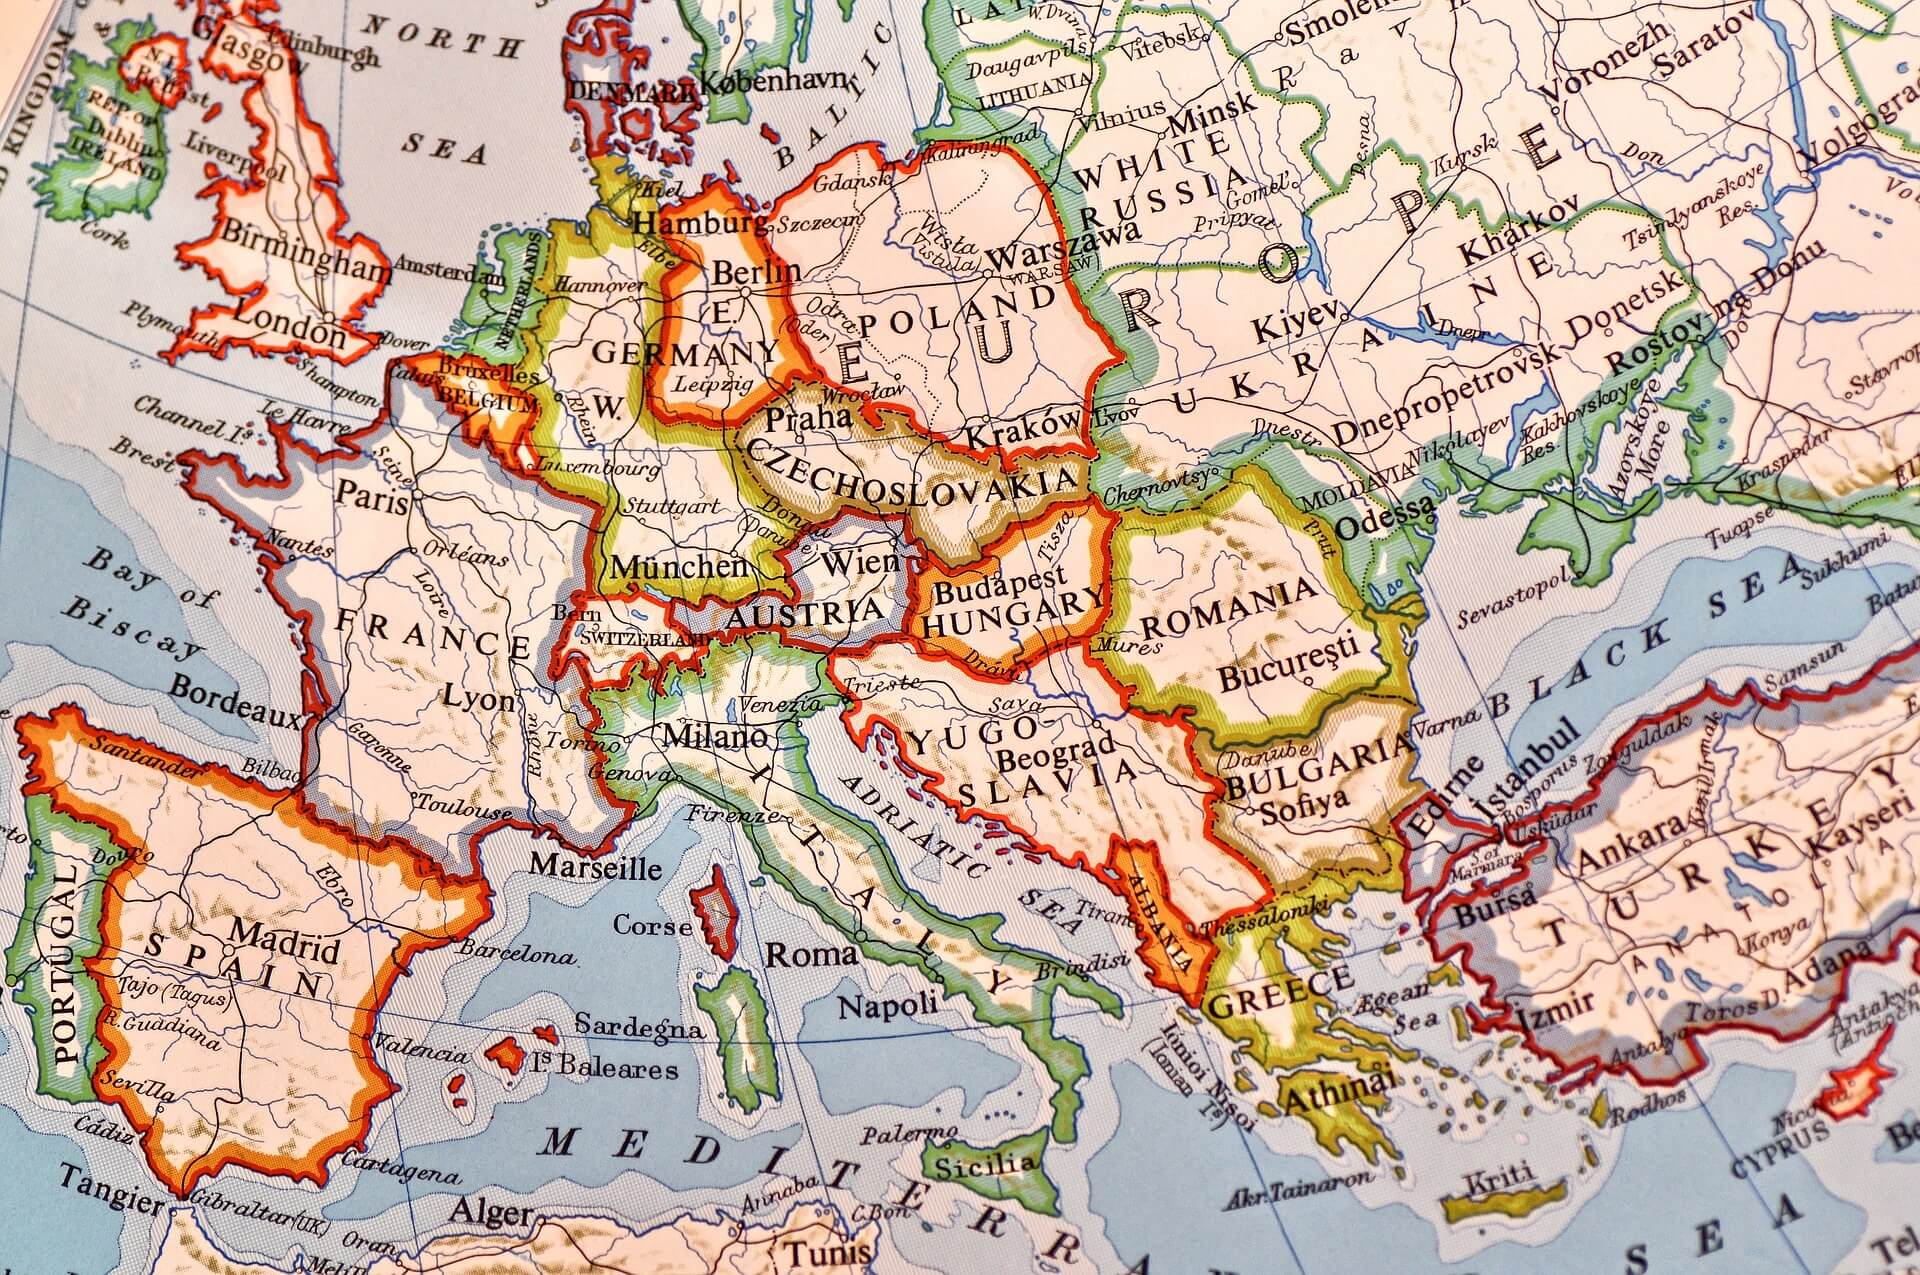 10 Characteristics Of Europe - Features of the European Continent